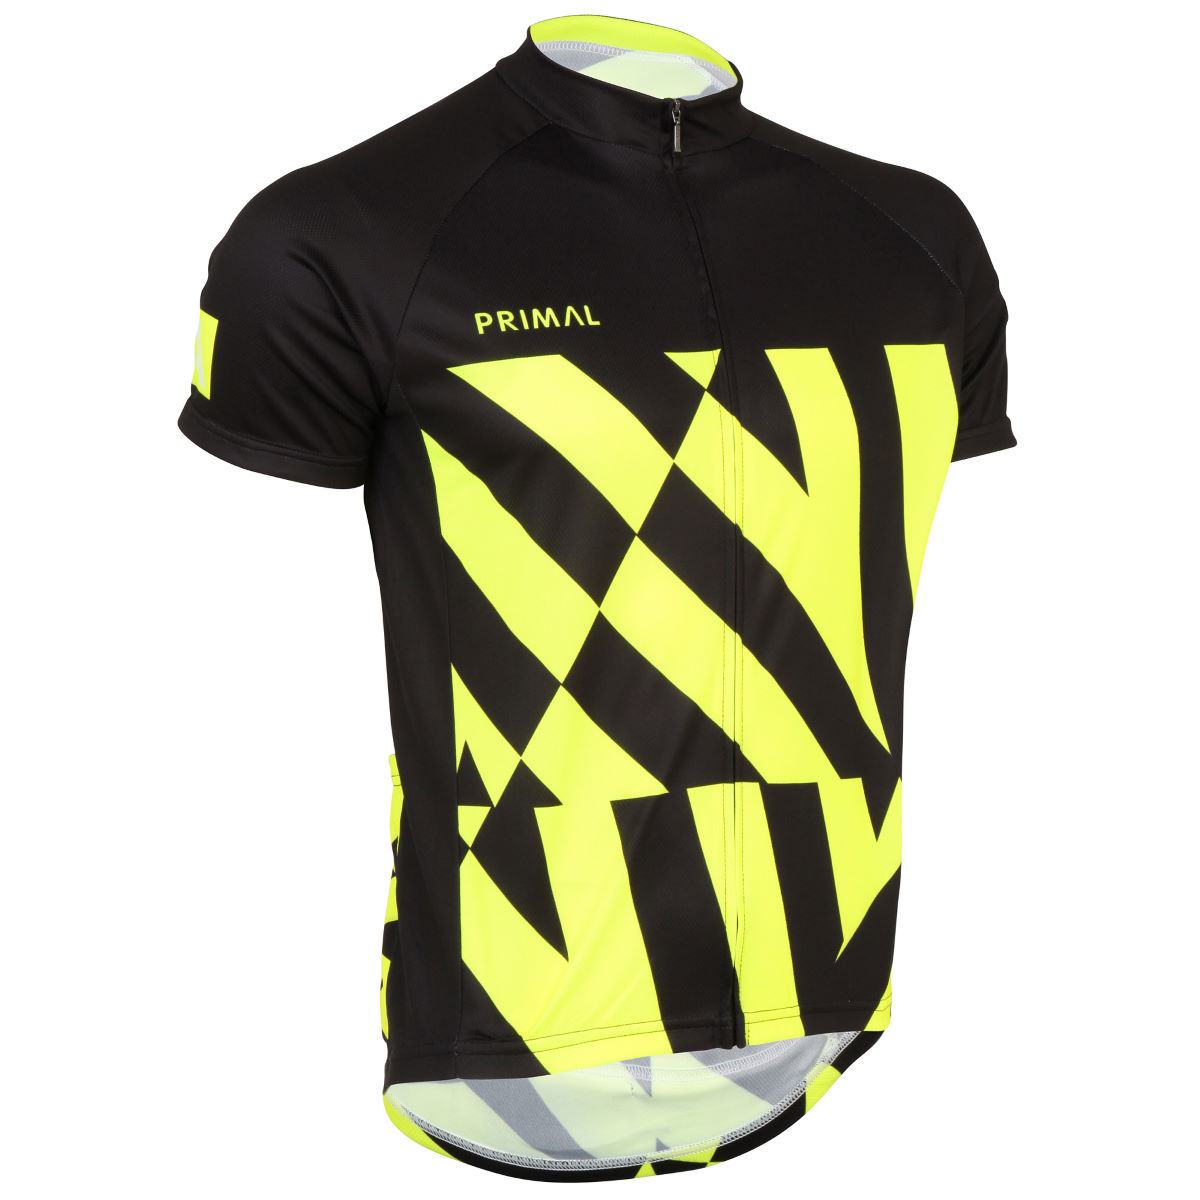 Primal Exclusive Fray Short Sleeve Jersey - Extra Large Yellow/Black